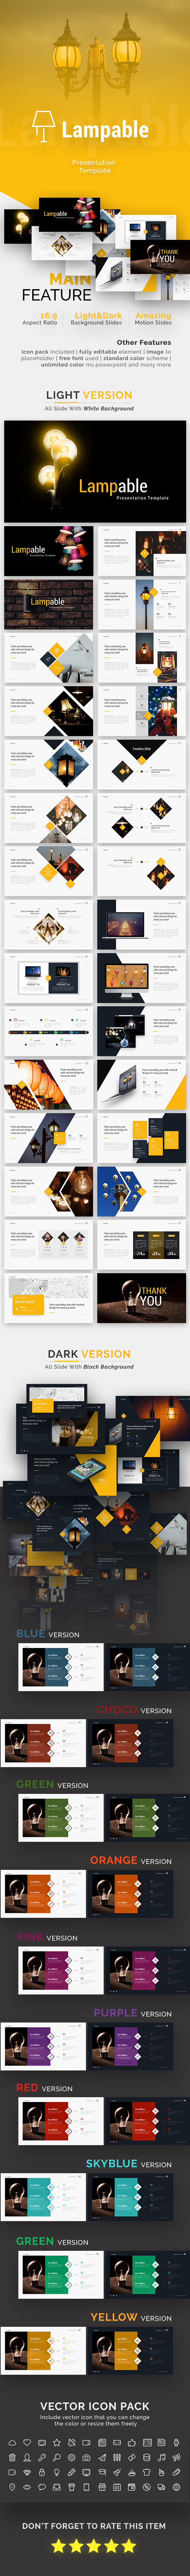 Lampable - Creative Powerpoint Template - Creative PowerPoint Templates